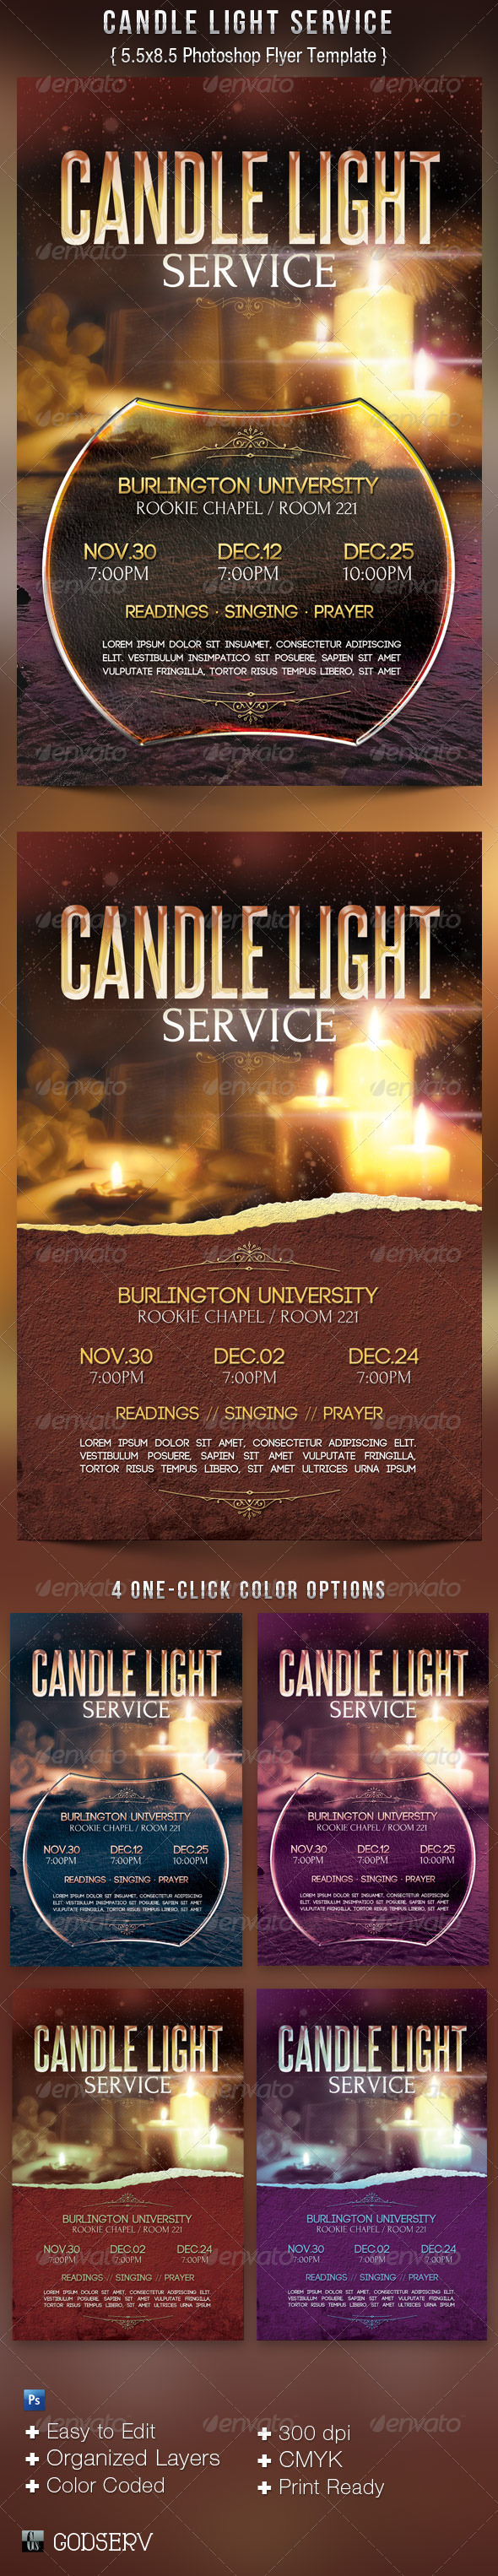 GraphicRiver Candle Light Service Flyer Templates 3379539